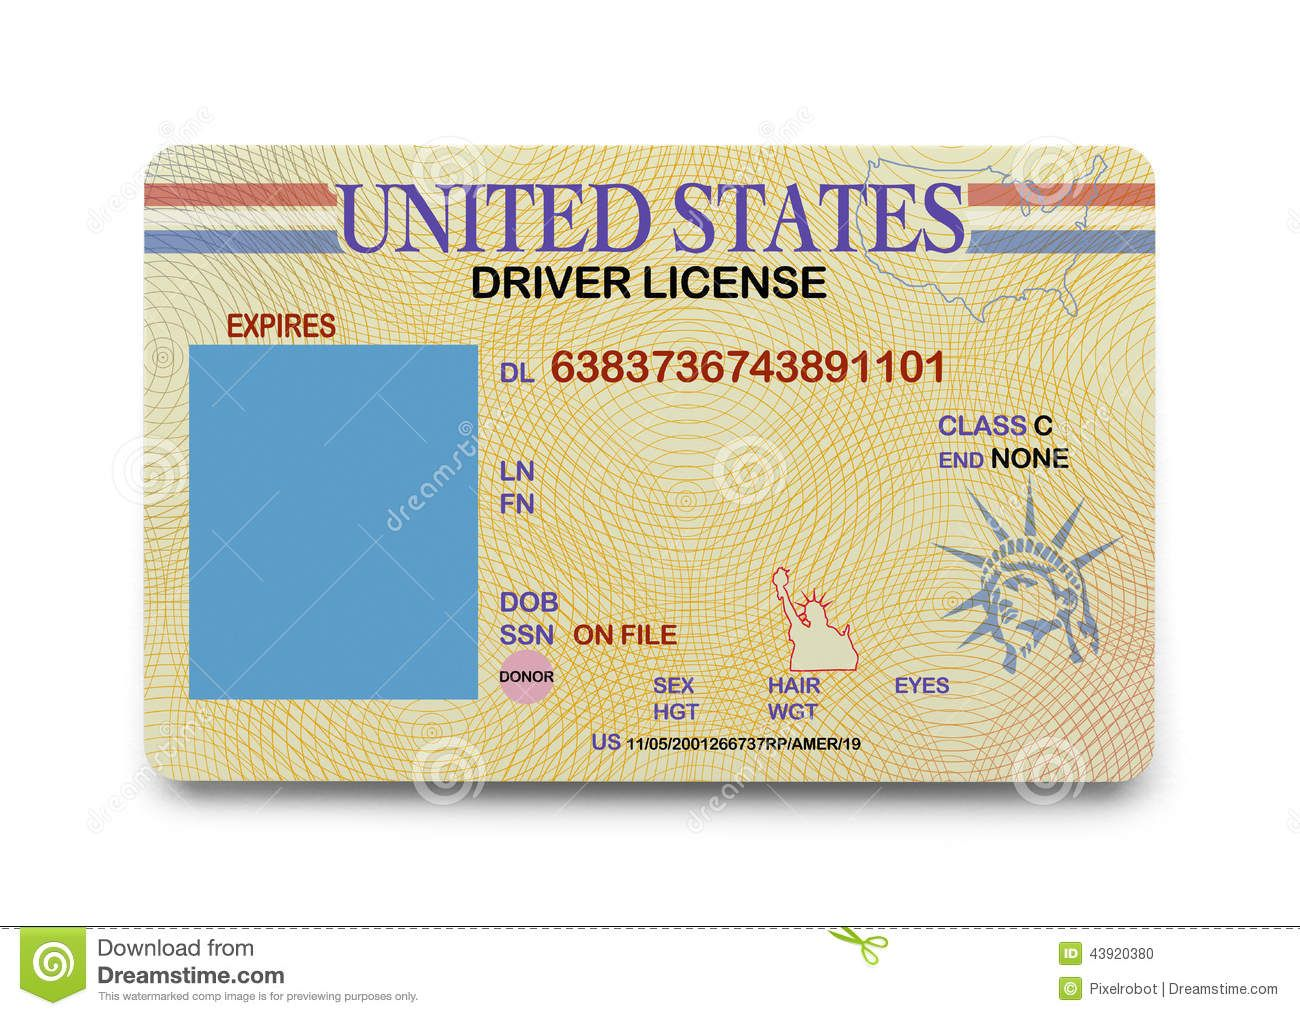 California drivers license blank templates drivers